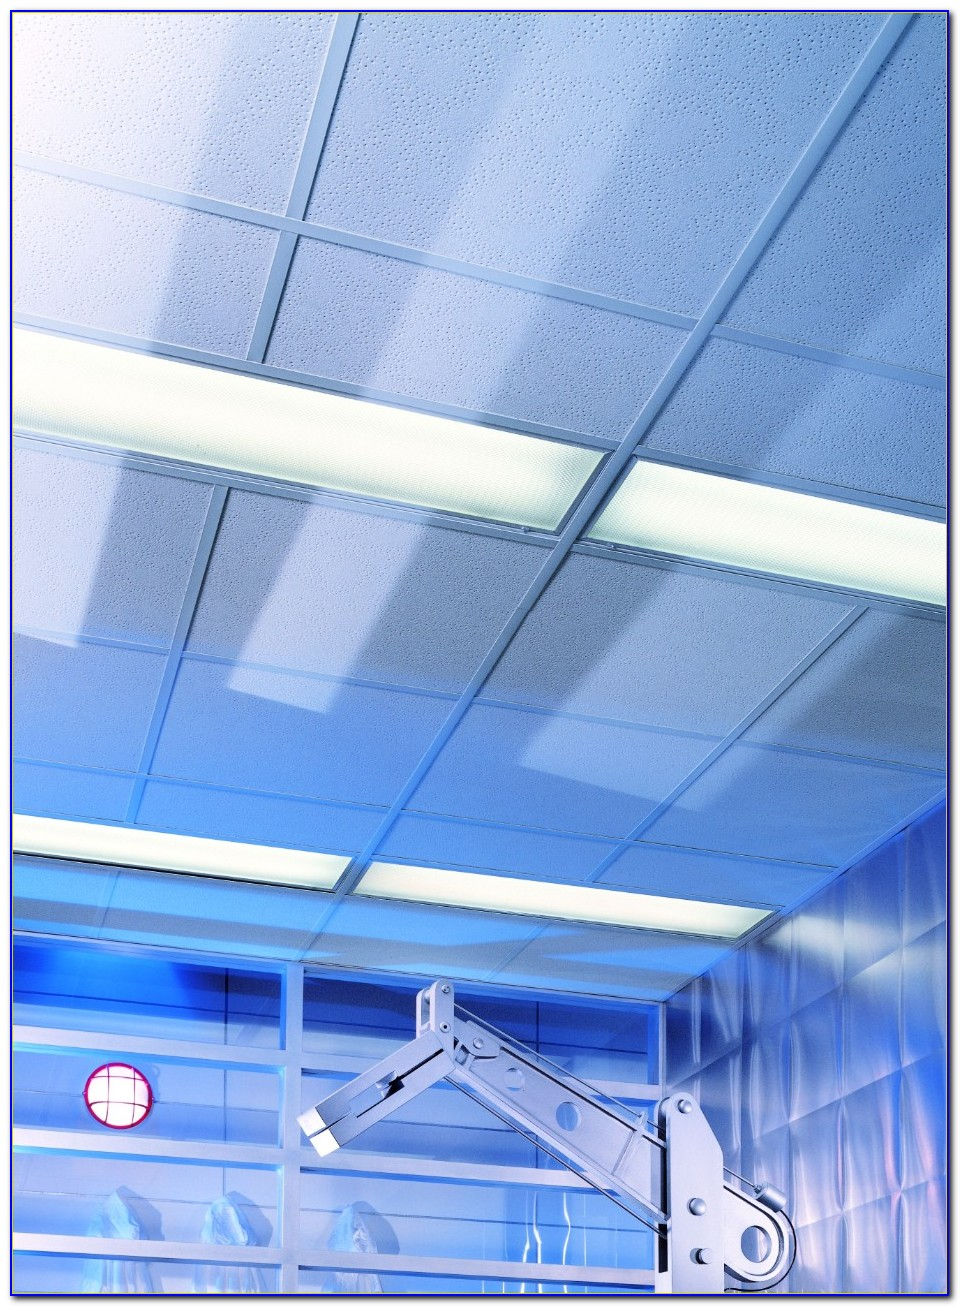 Clean Room Ceiling Tile Clips